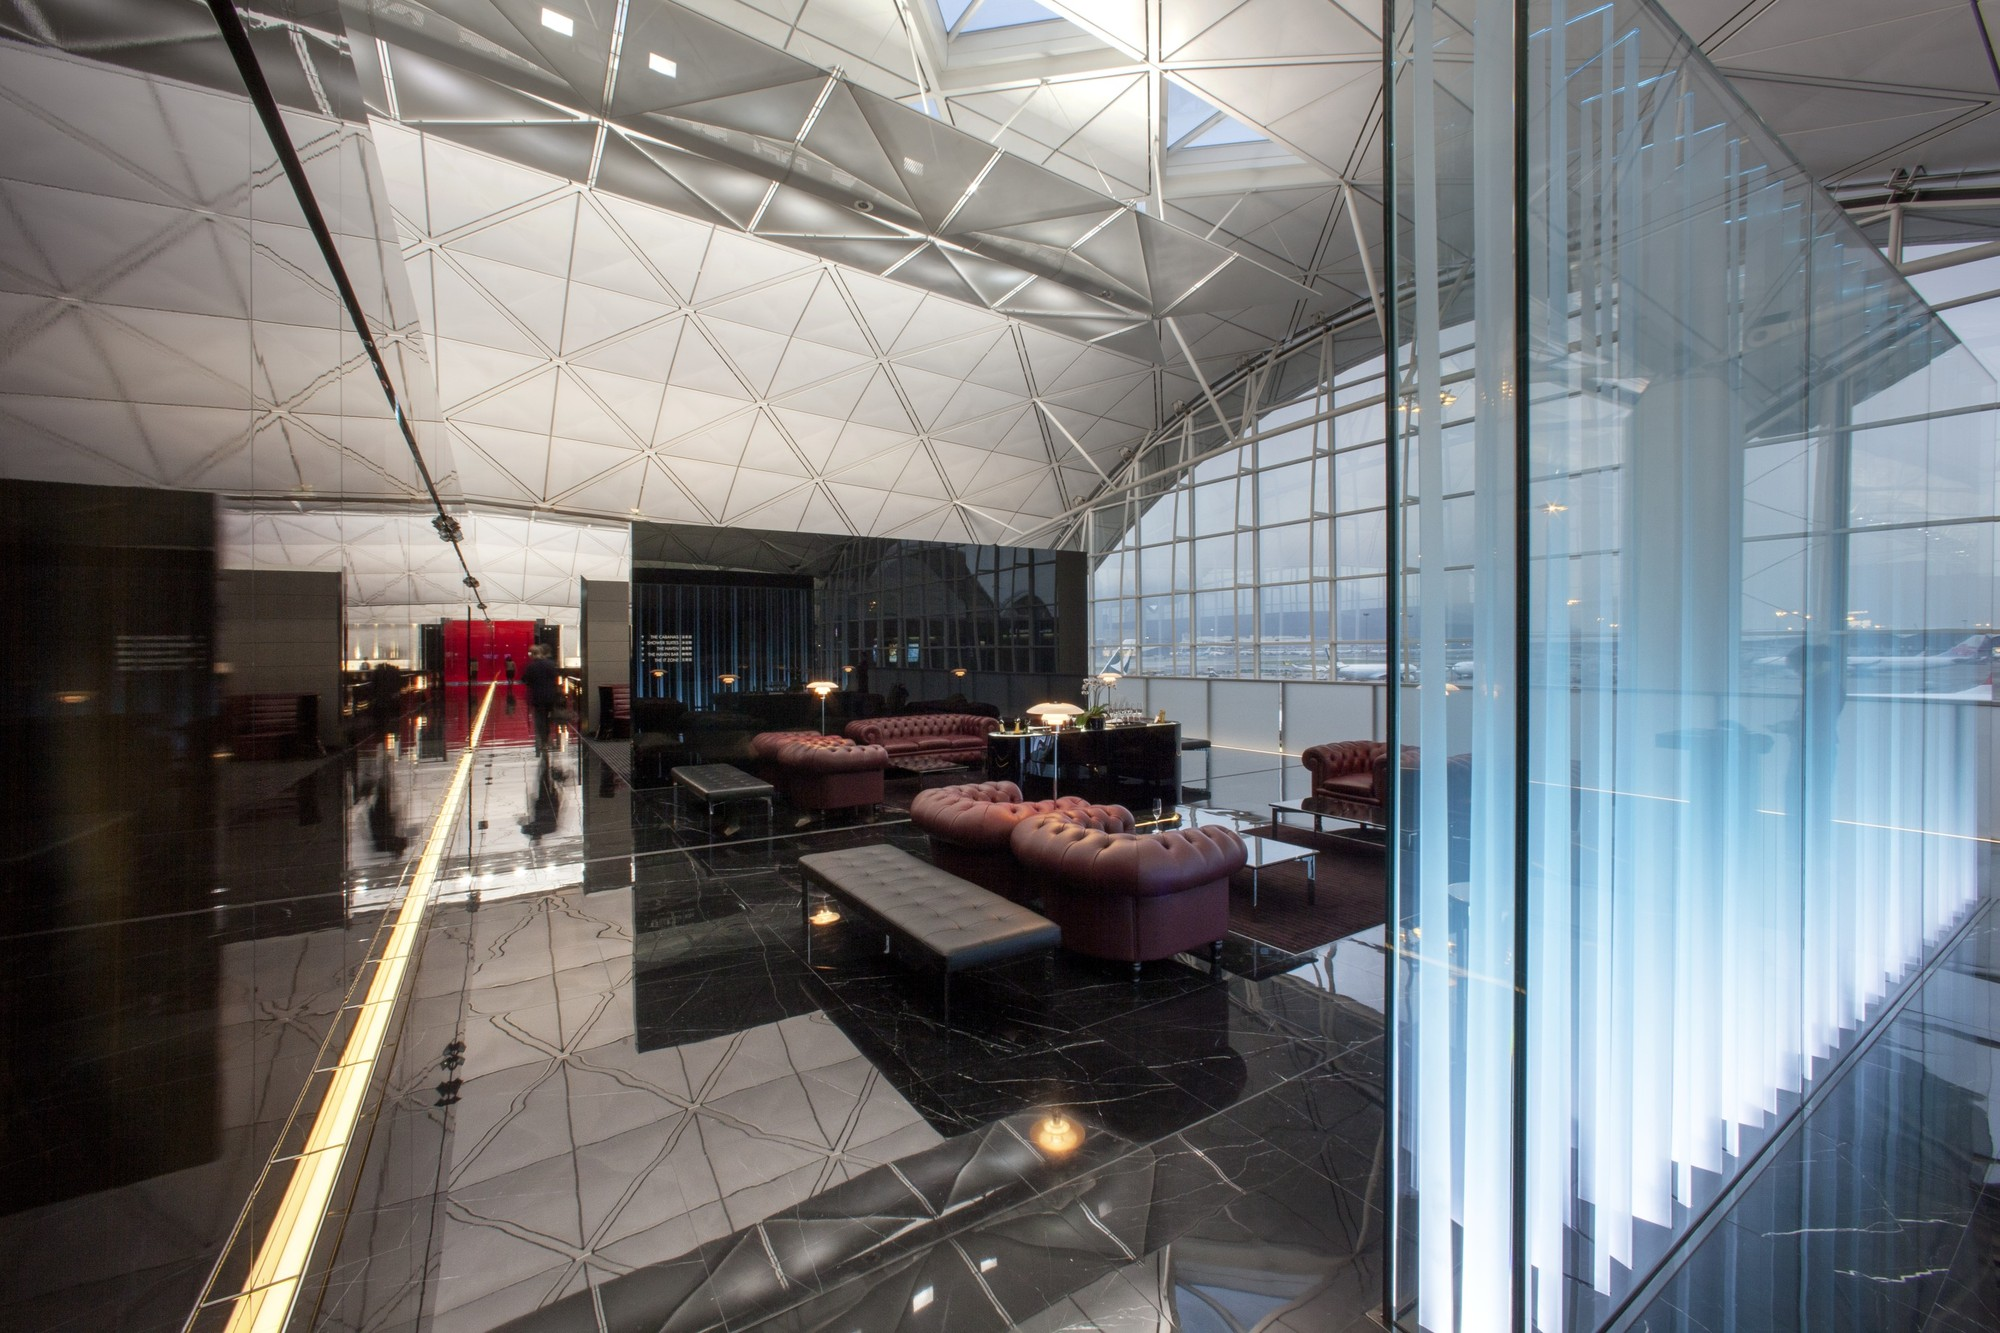 The lounges at Hong Kong International Airport, also designed by Foster + Partners. Image © John Nye